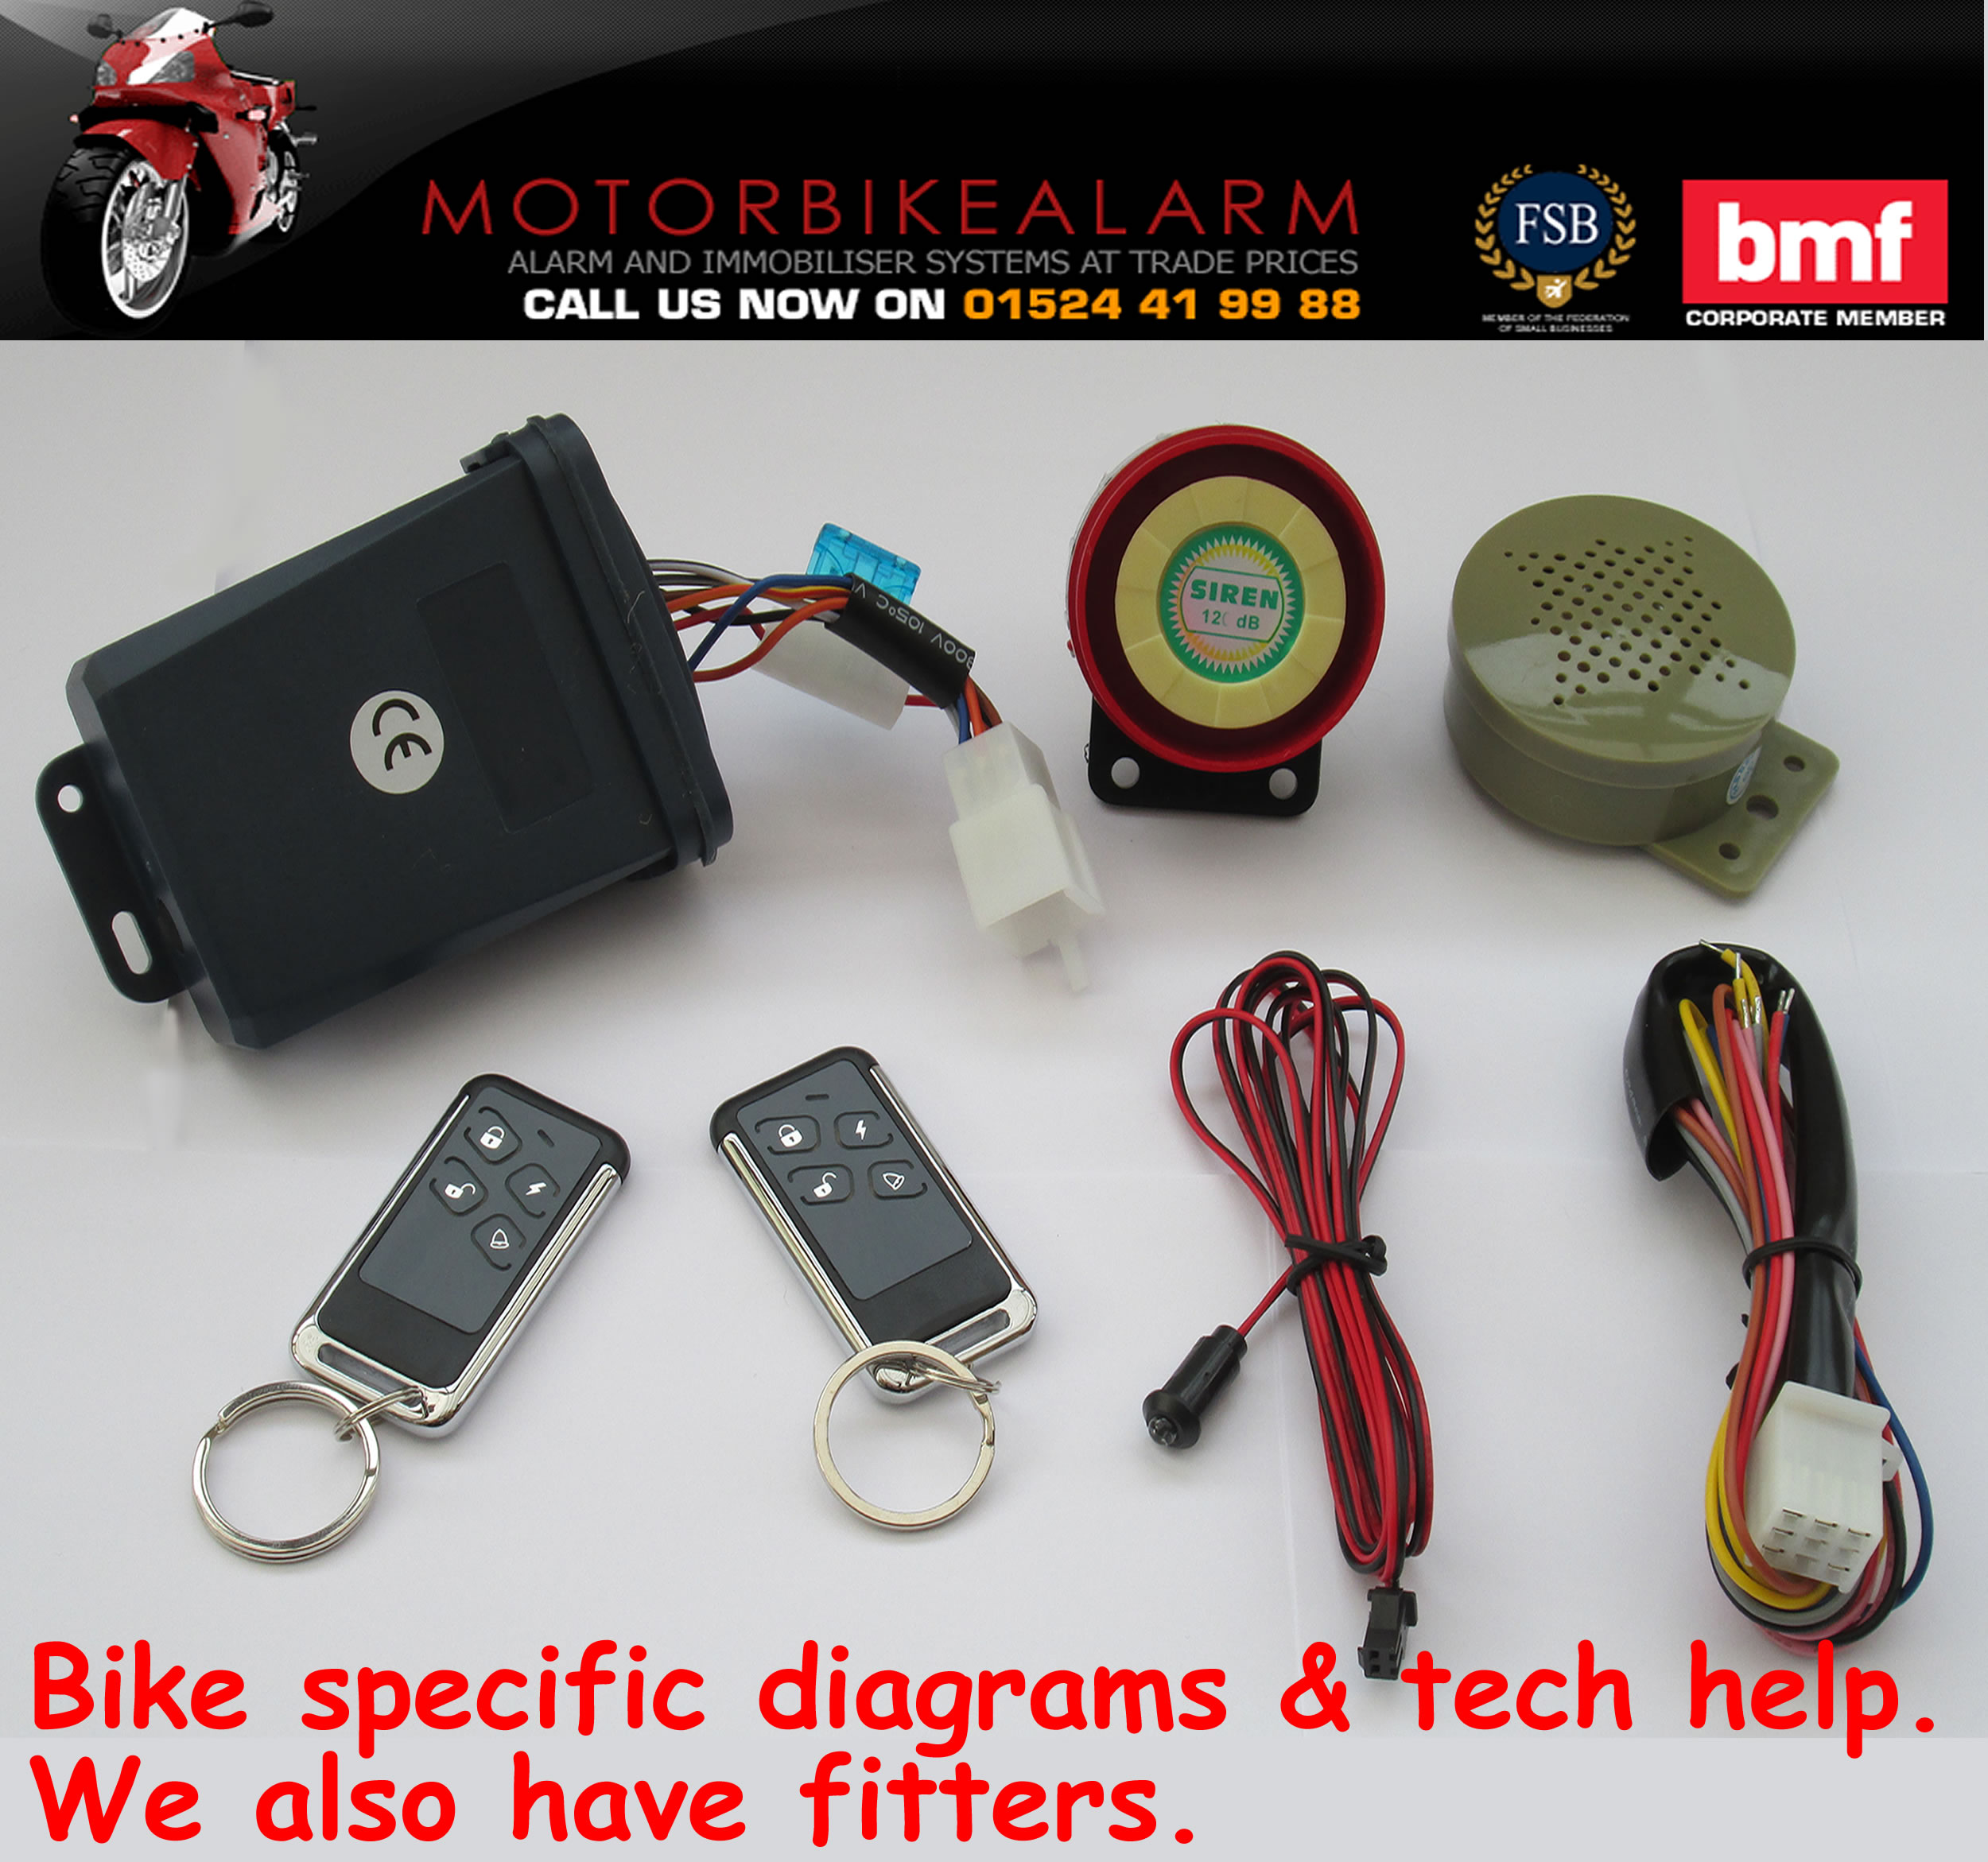 c11talkebay ncs c 11 talking motorbike alarm and immobiliser system cyclone motorcycle alarm wiring diagram at gsmportal.co